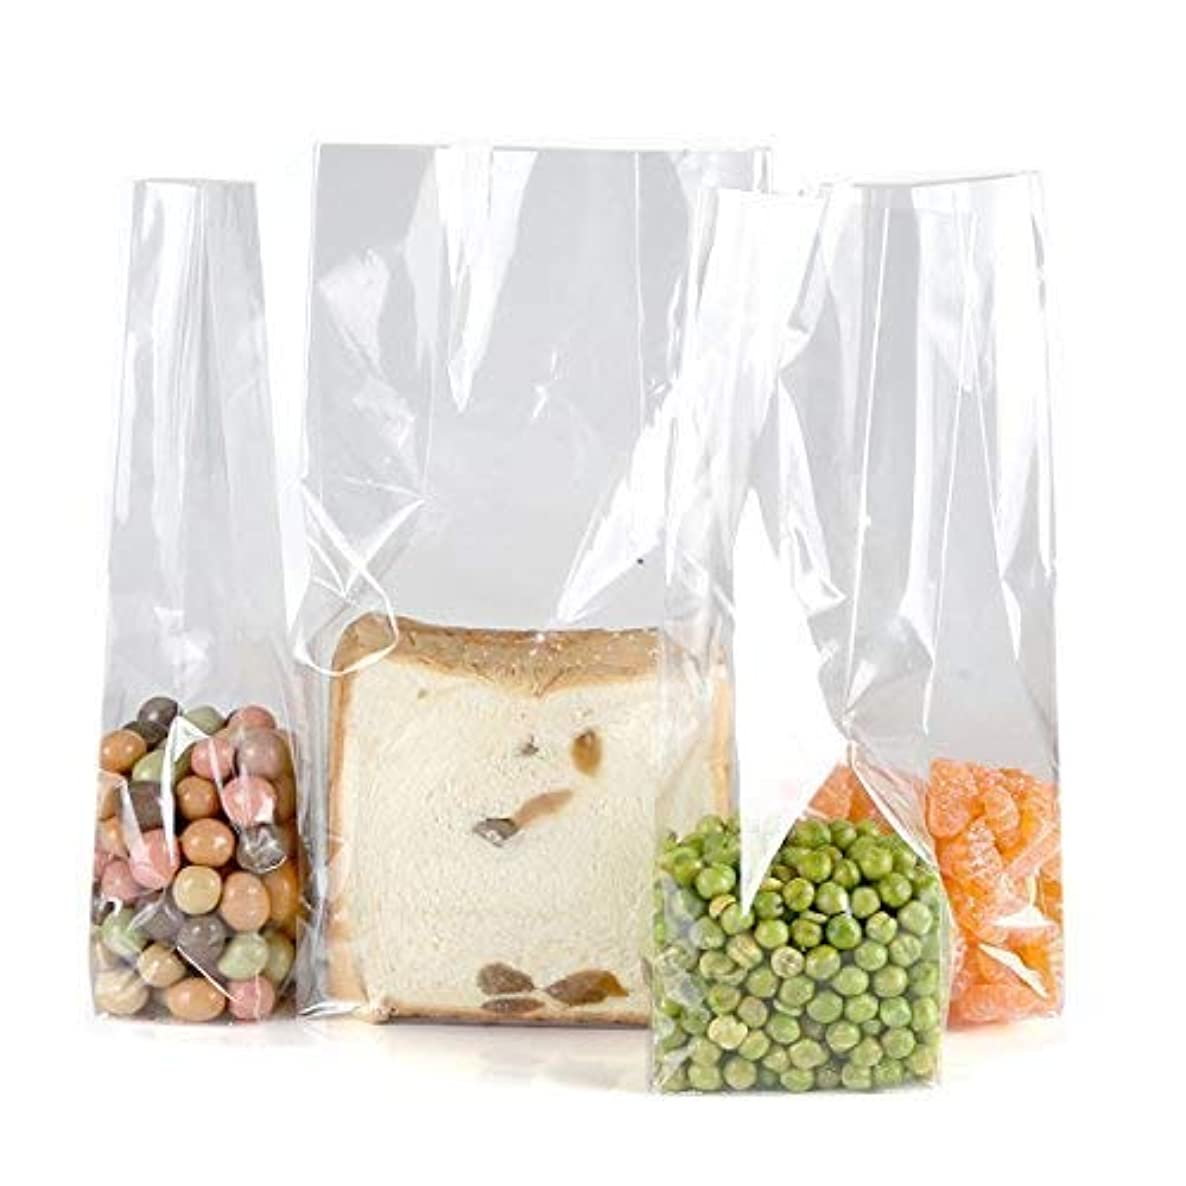 Clear Plastic Cellophane Gift Wrap Cello Bags with Ties,Size L 3,W 2,H 9.8 Inch,10 Count,Square Bottom